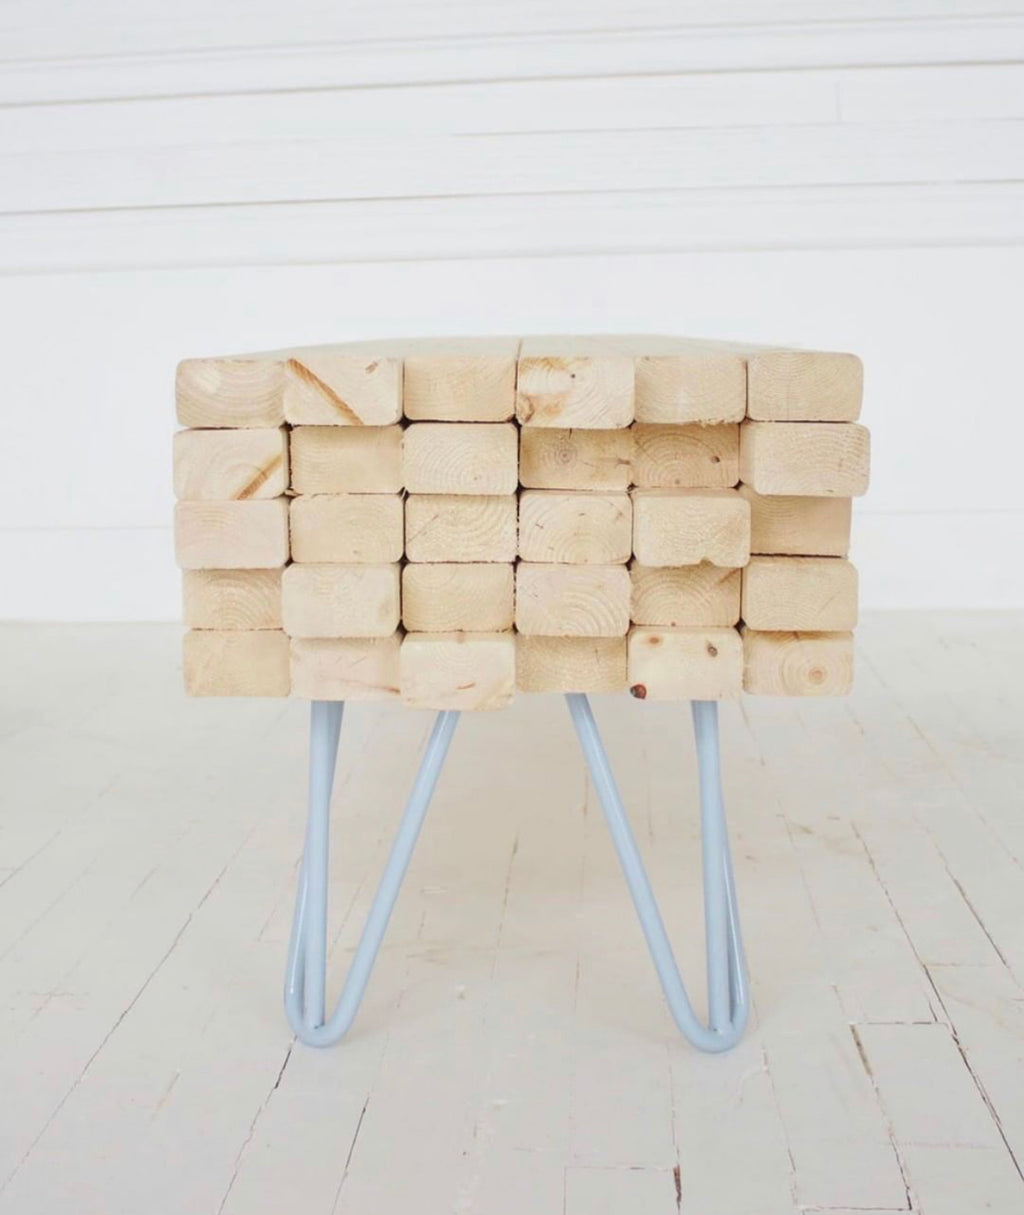 Ideas Inspiration Coffee Tables Made With Diyhairpinlegs Diy Hairpin Legs